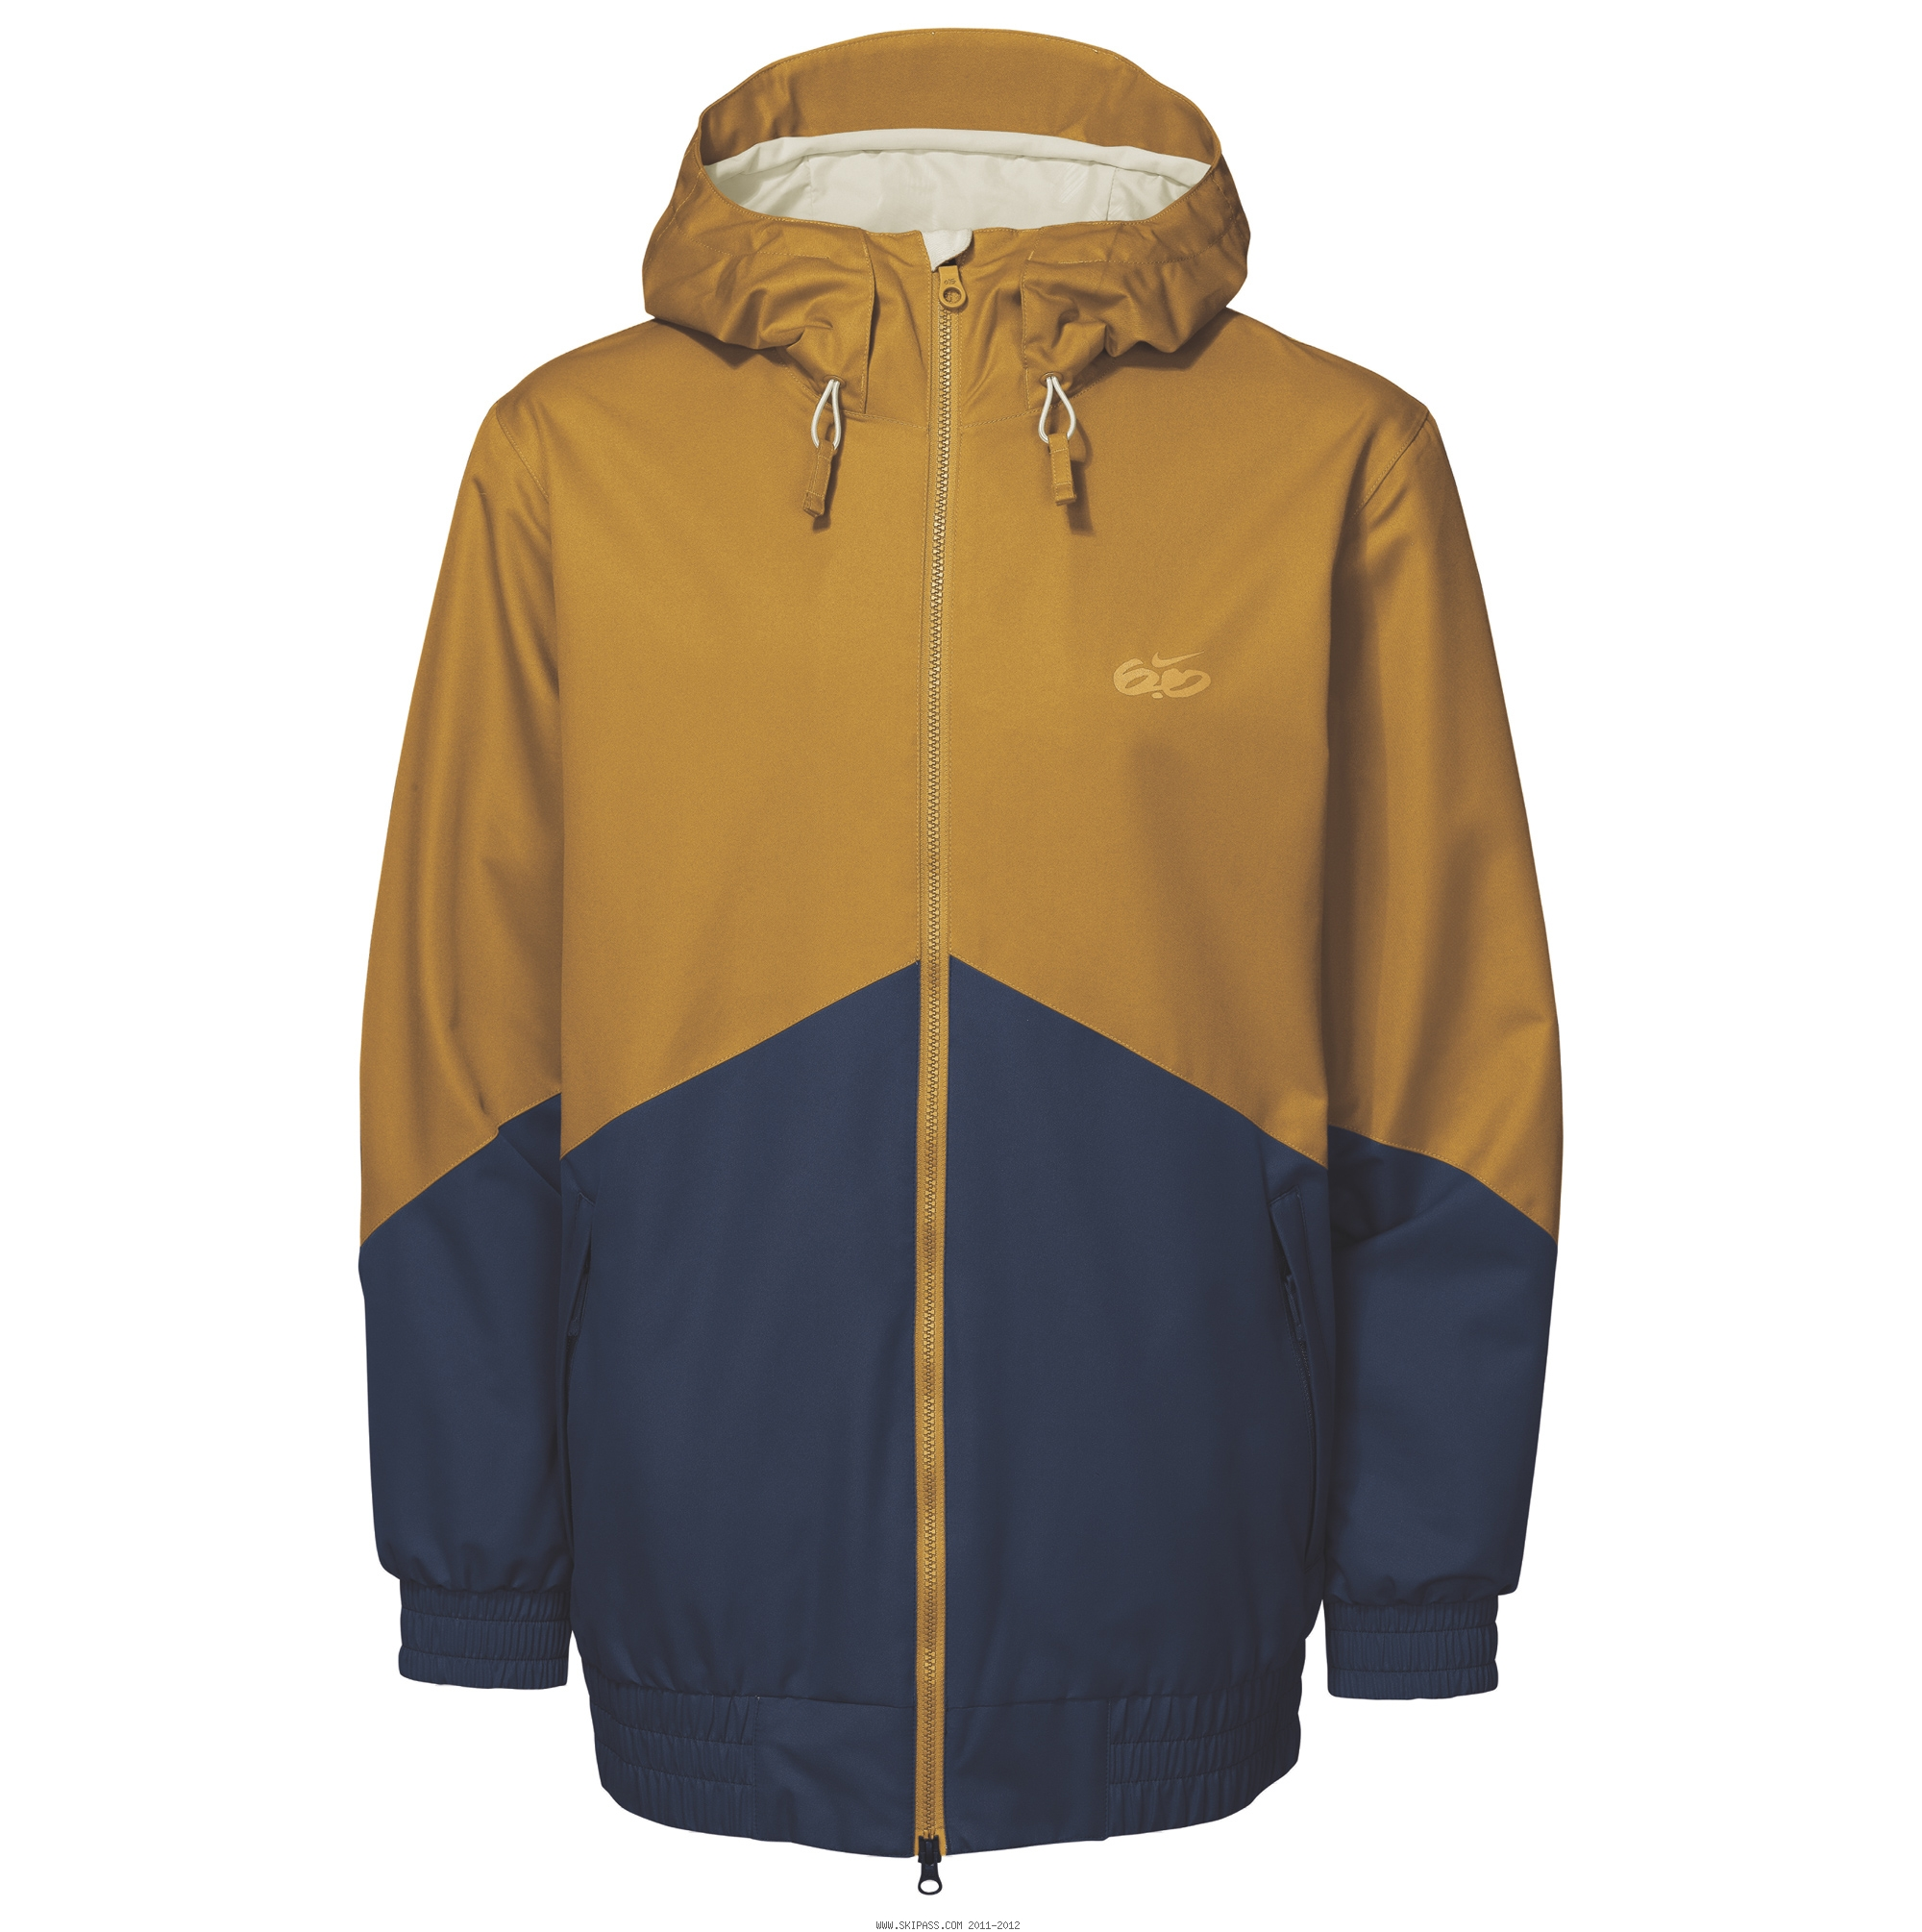 look out for entire collection classic styles veste nike 6.0 kampai